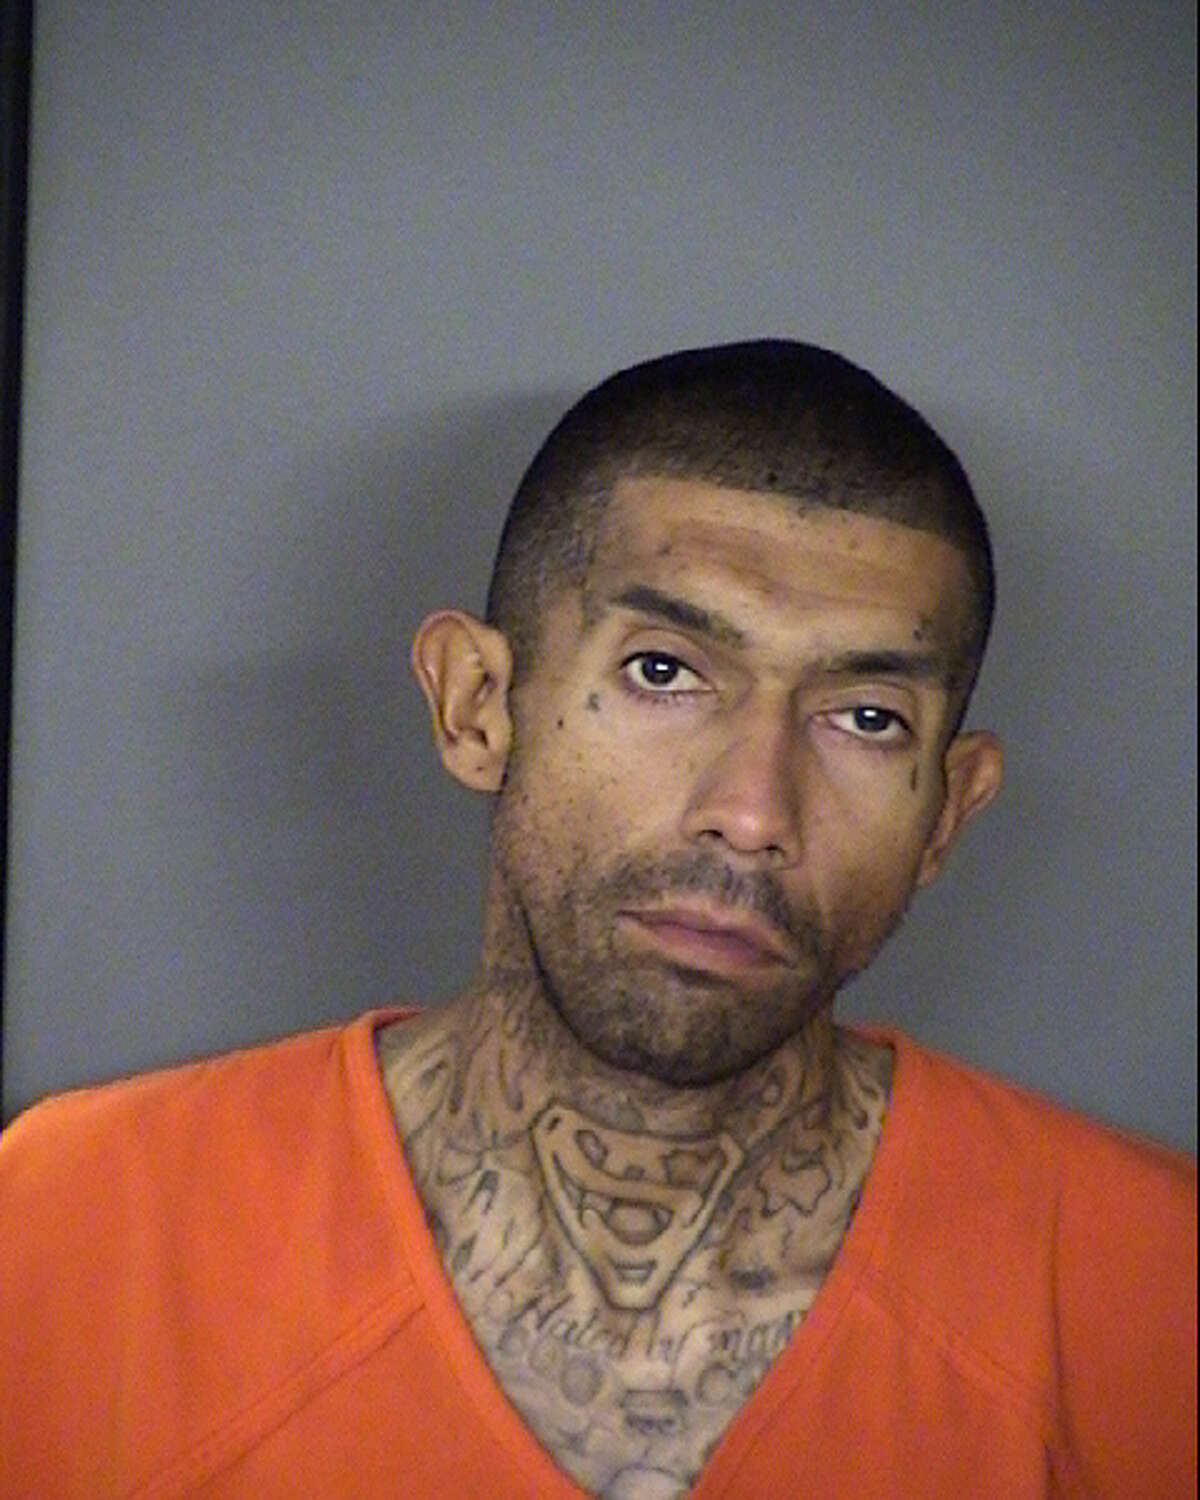 Jason Matthew Prieto, 35, was arrested Jan. 22, 2017 on charges of capital murder and aggravated robbery.